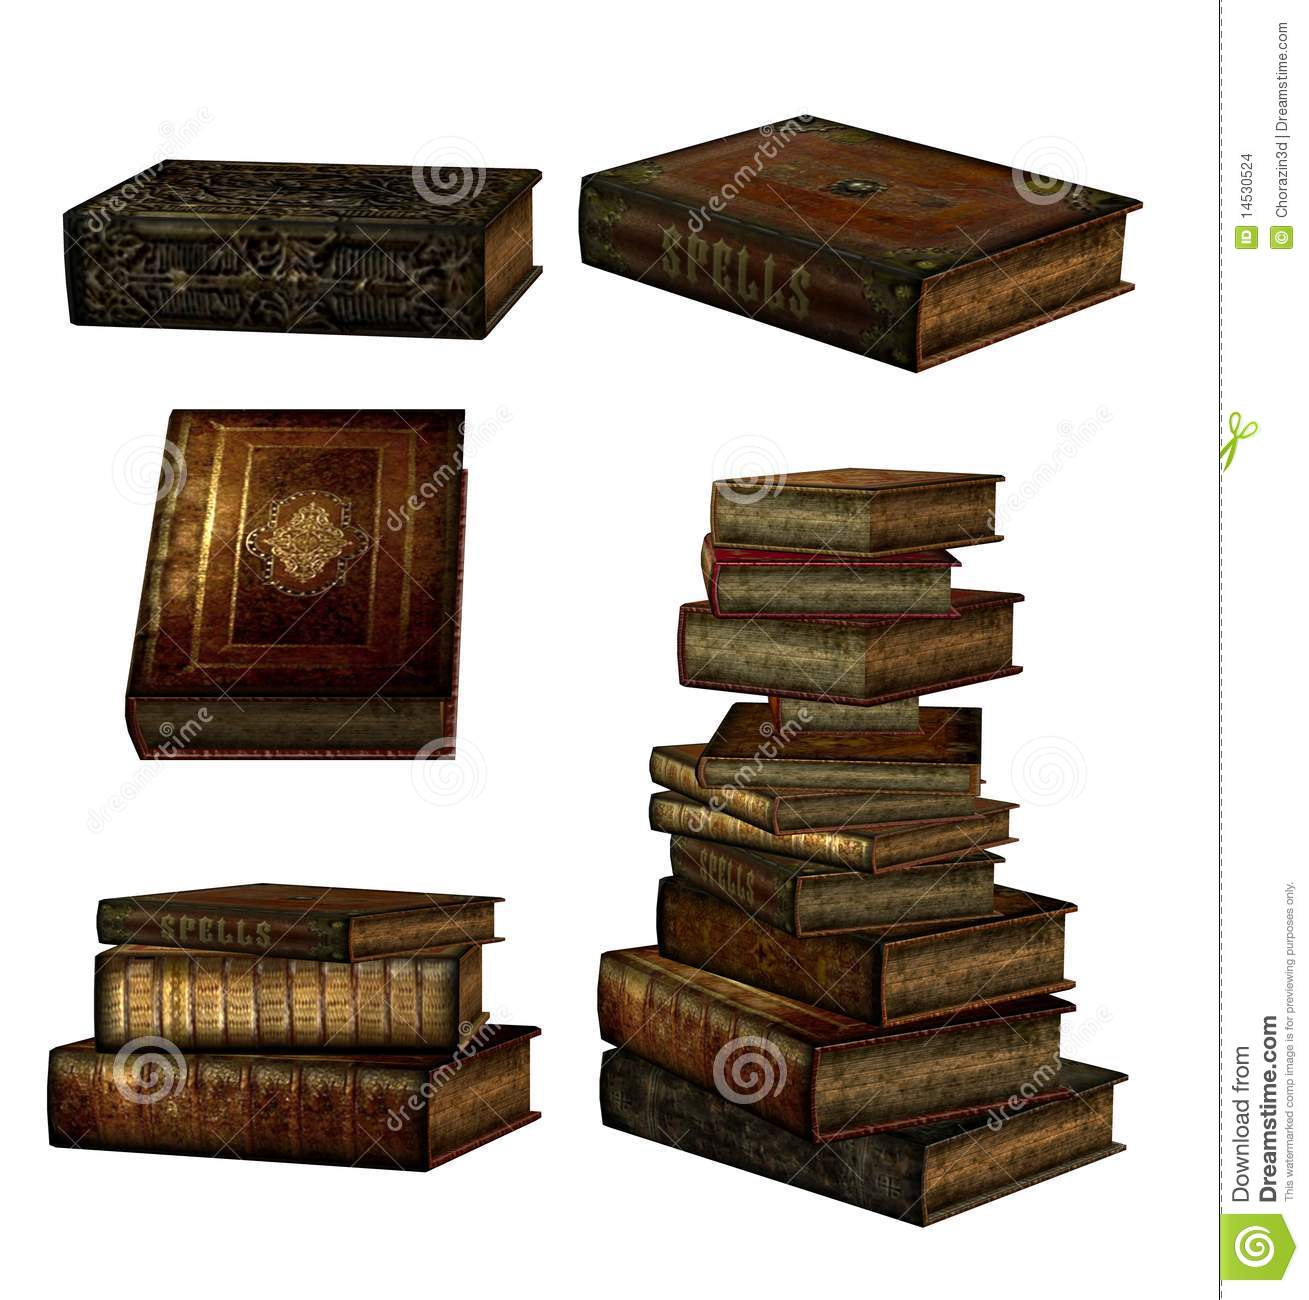 Fantasy Books Stock Images - Image: 14530524